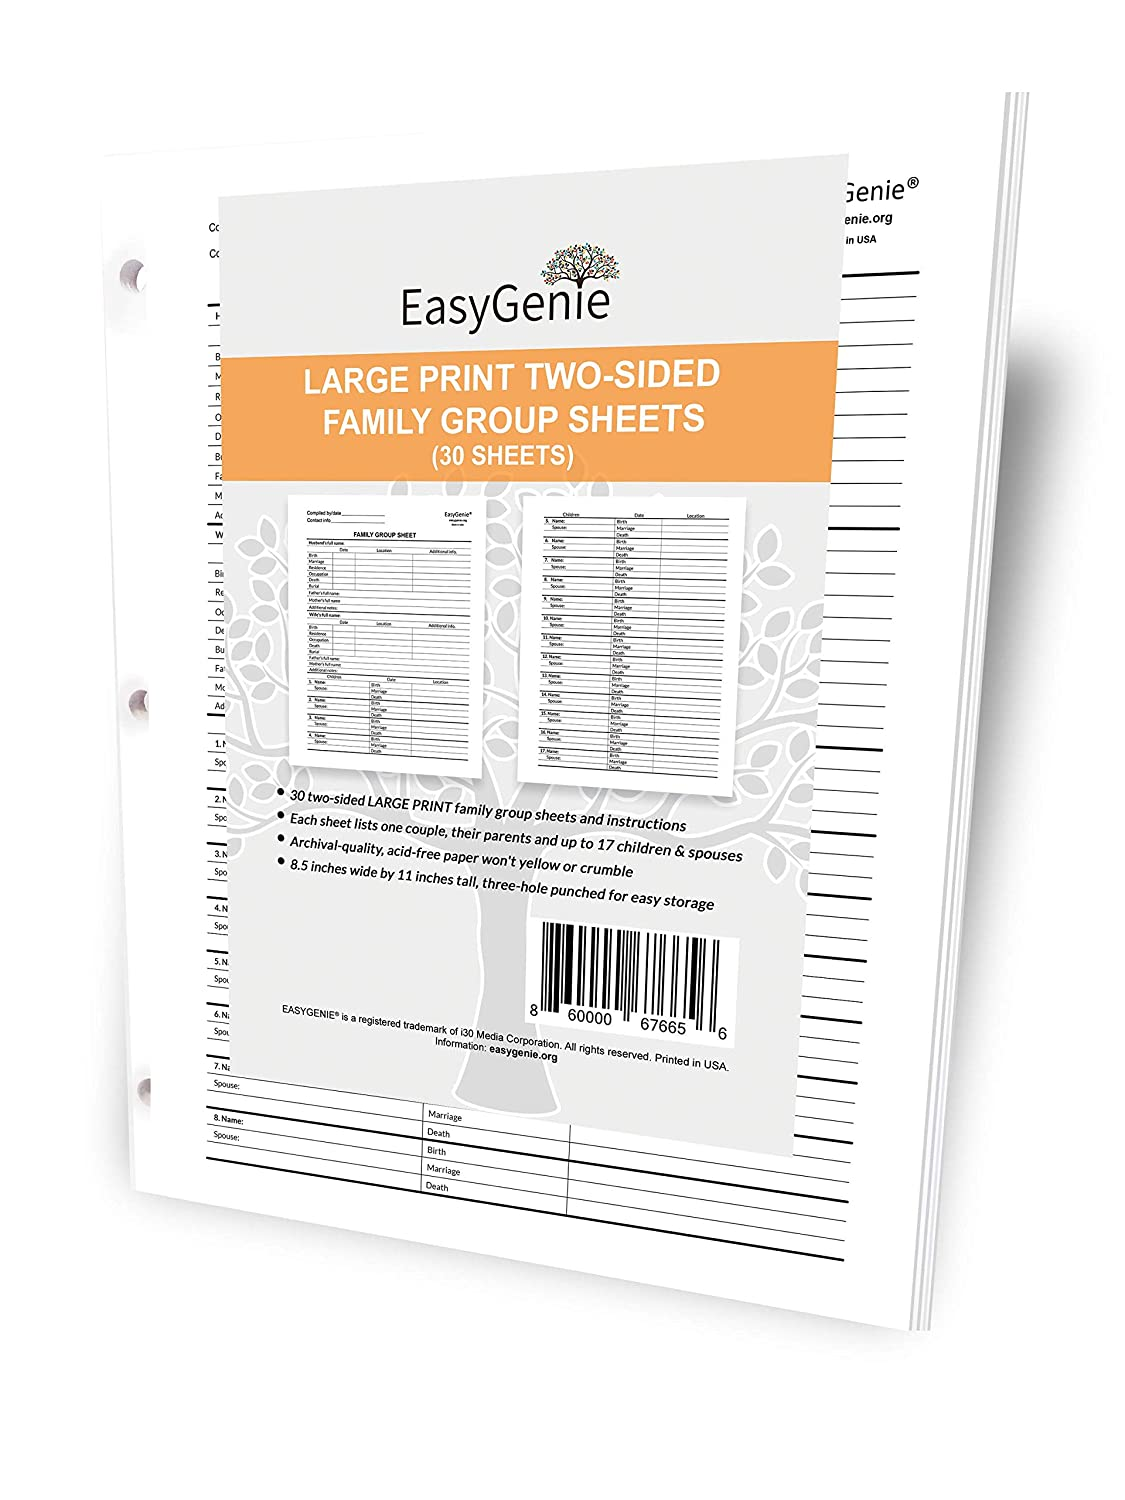 EasyGenie Large Print Two-Sided Family Group Sheets for Ancestry (30 Sheets) Archival-Quality Genealogy Forms